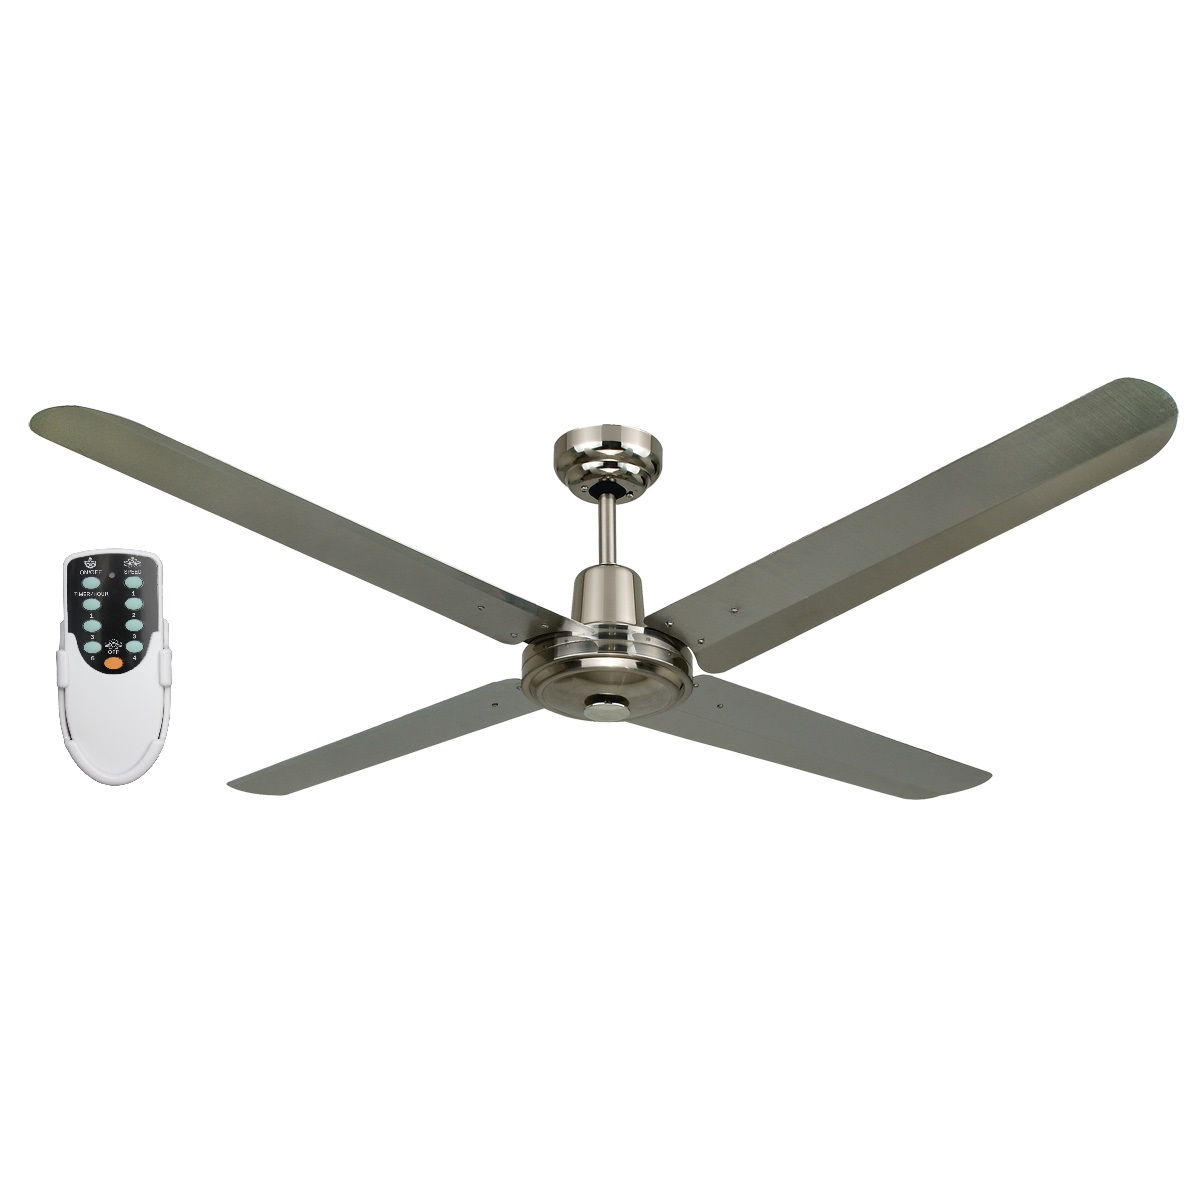 Blizzard56 1200mm 316ss Ceiling Fan Remote Rem